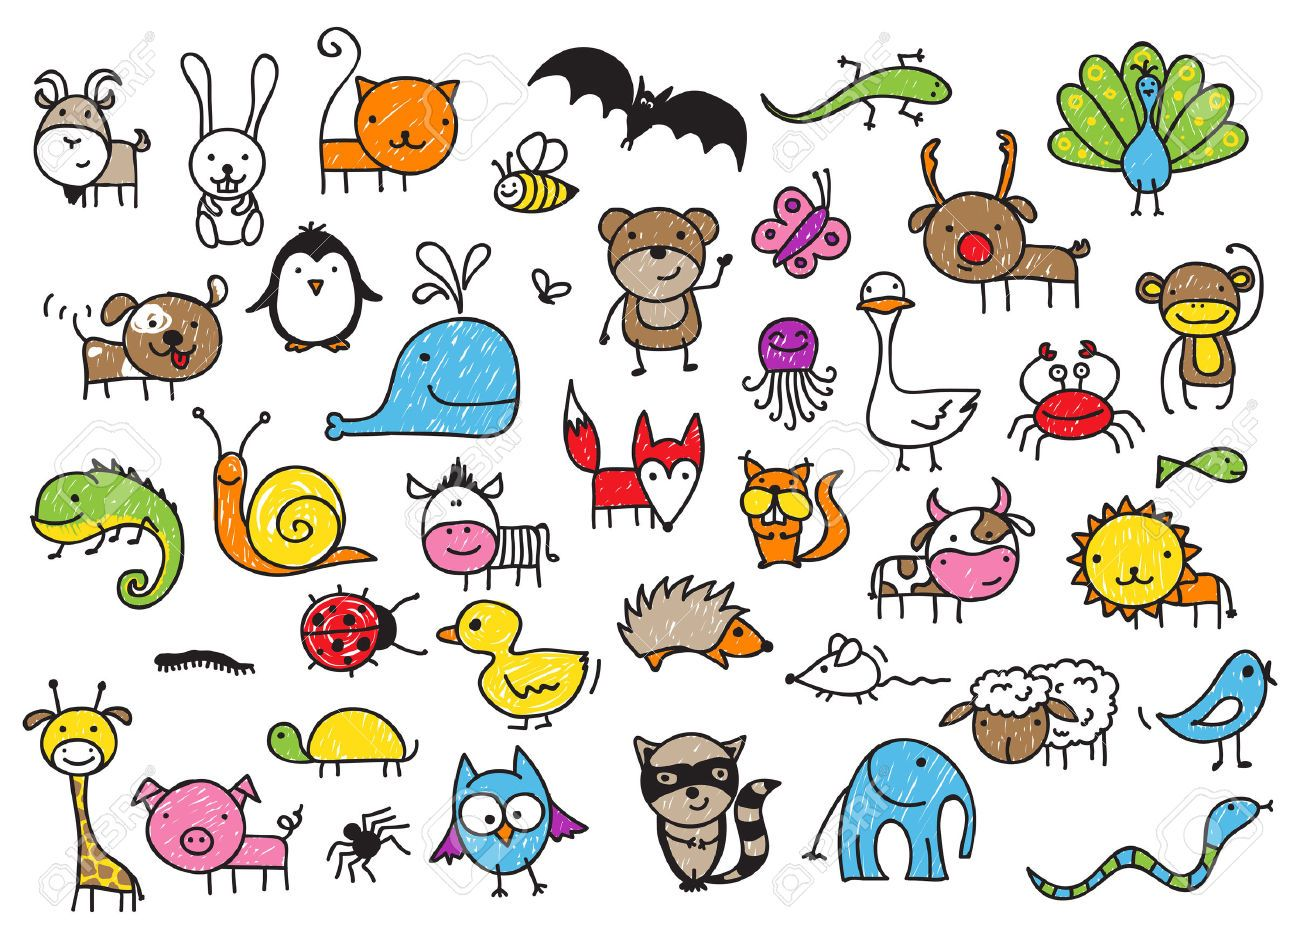 doodle animals Google Search Childrens drawings